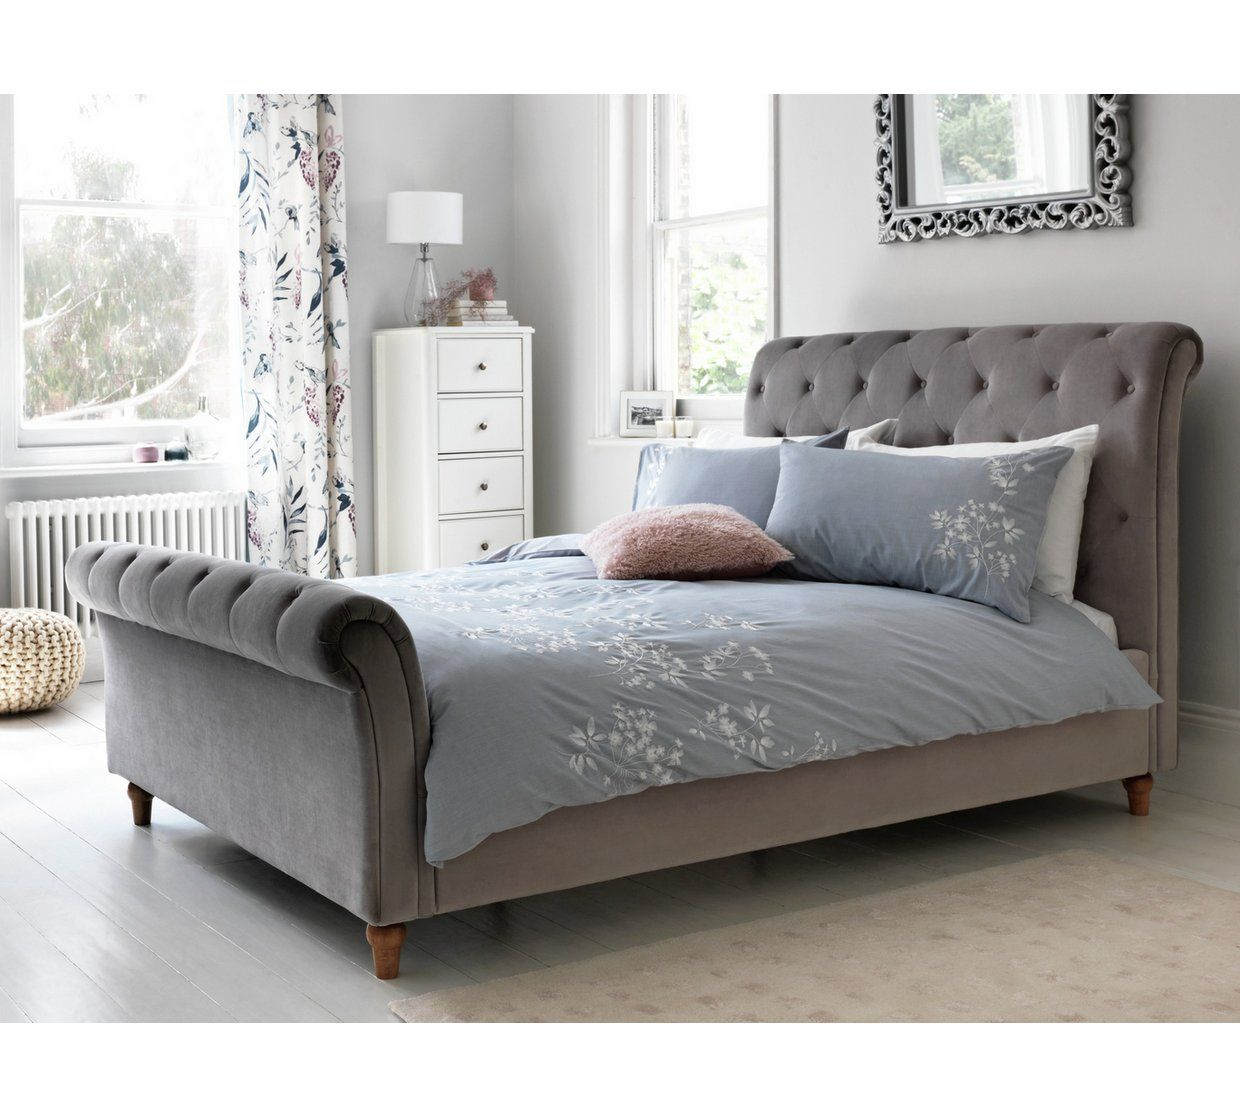 Cranford Scroll Kingsize Bed Frame Silver Love Luxury With Its Voluptuous Scroll Design Silver Bedroom Furniture Double Bed Frame